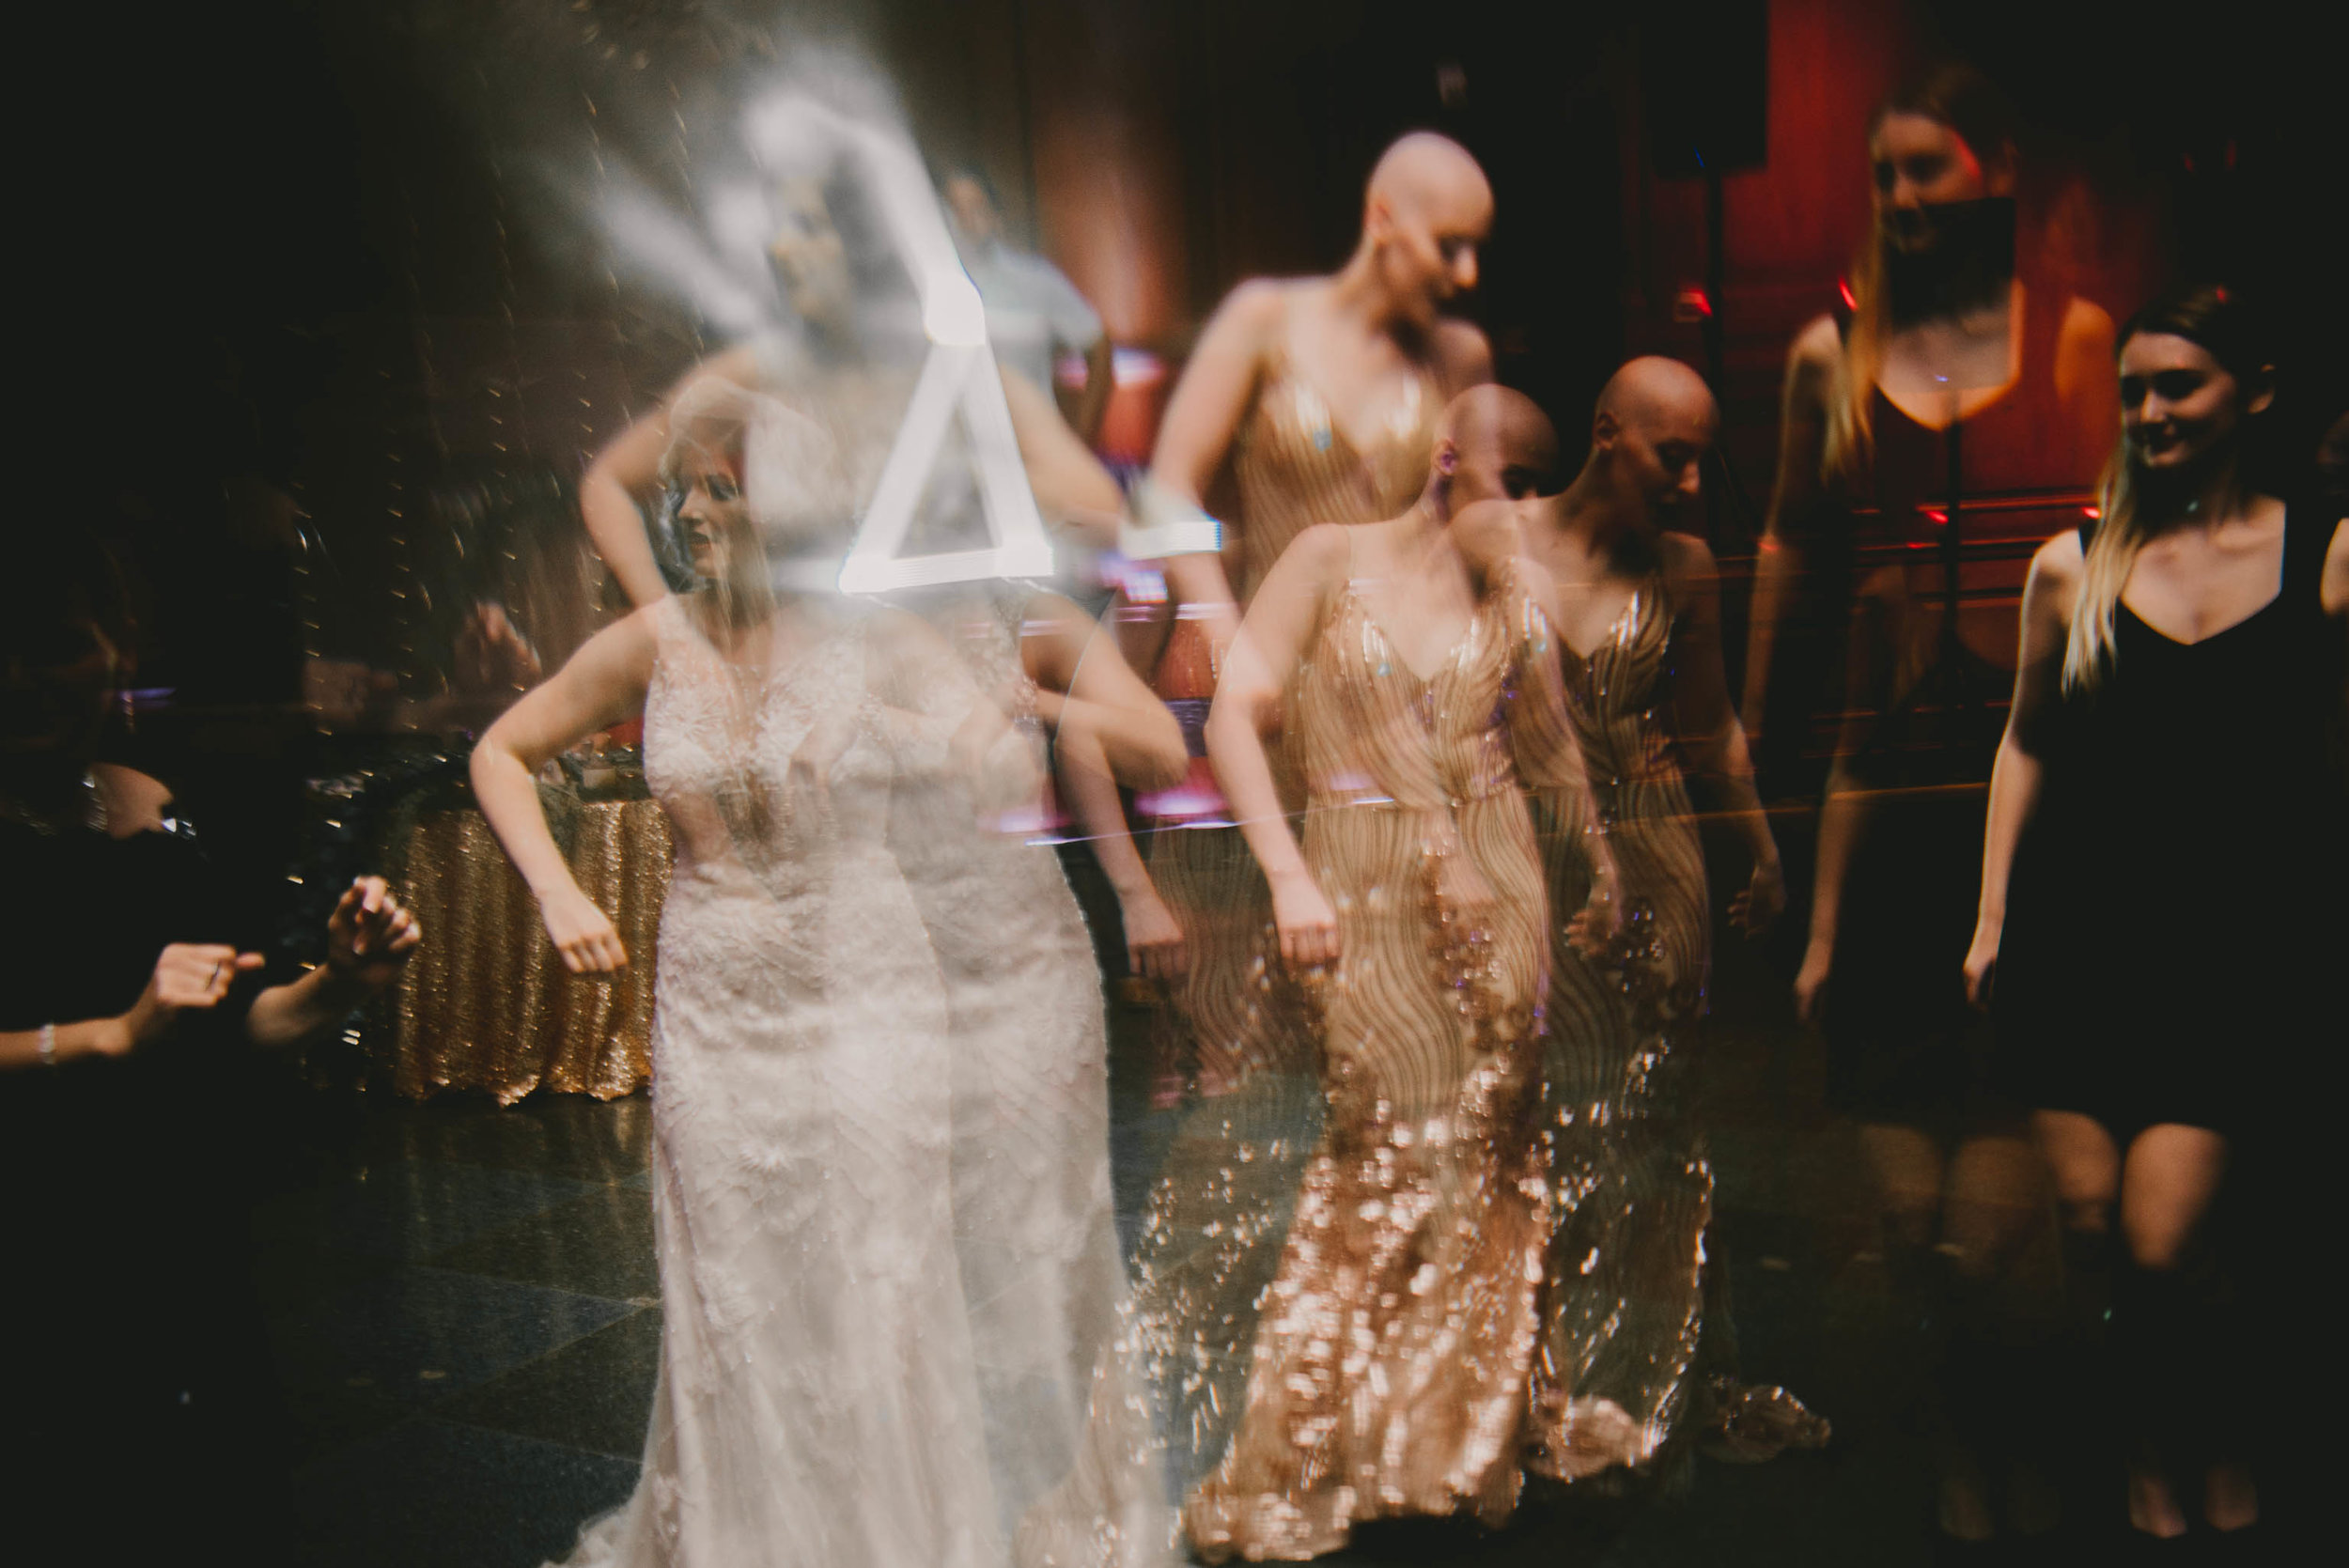 21c-hotel-durham-offbeat-wedding-creative-dance-photo.jpg